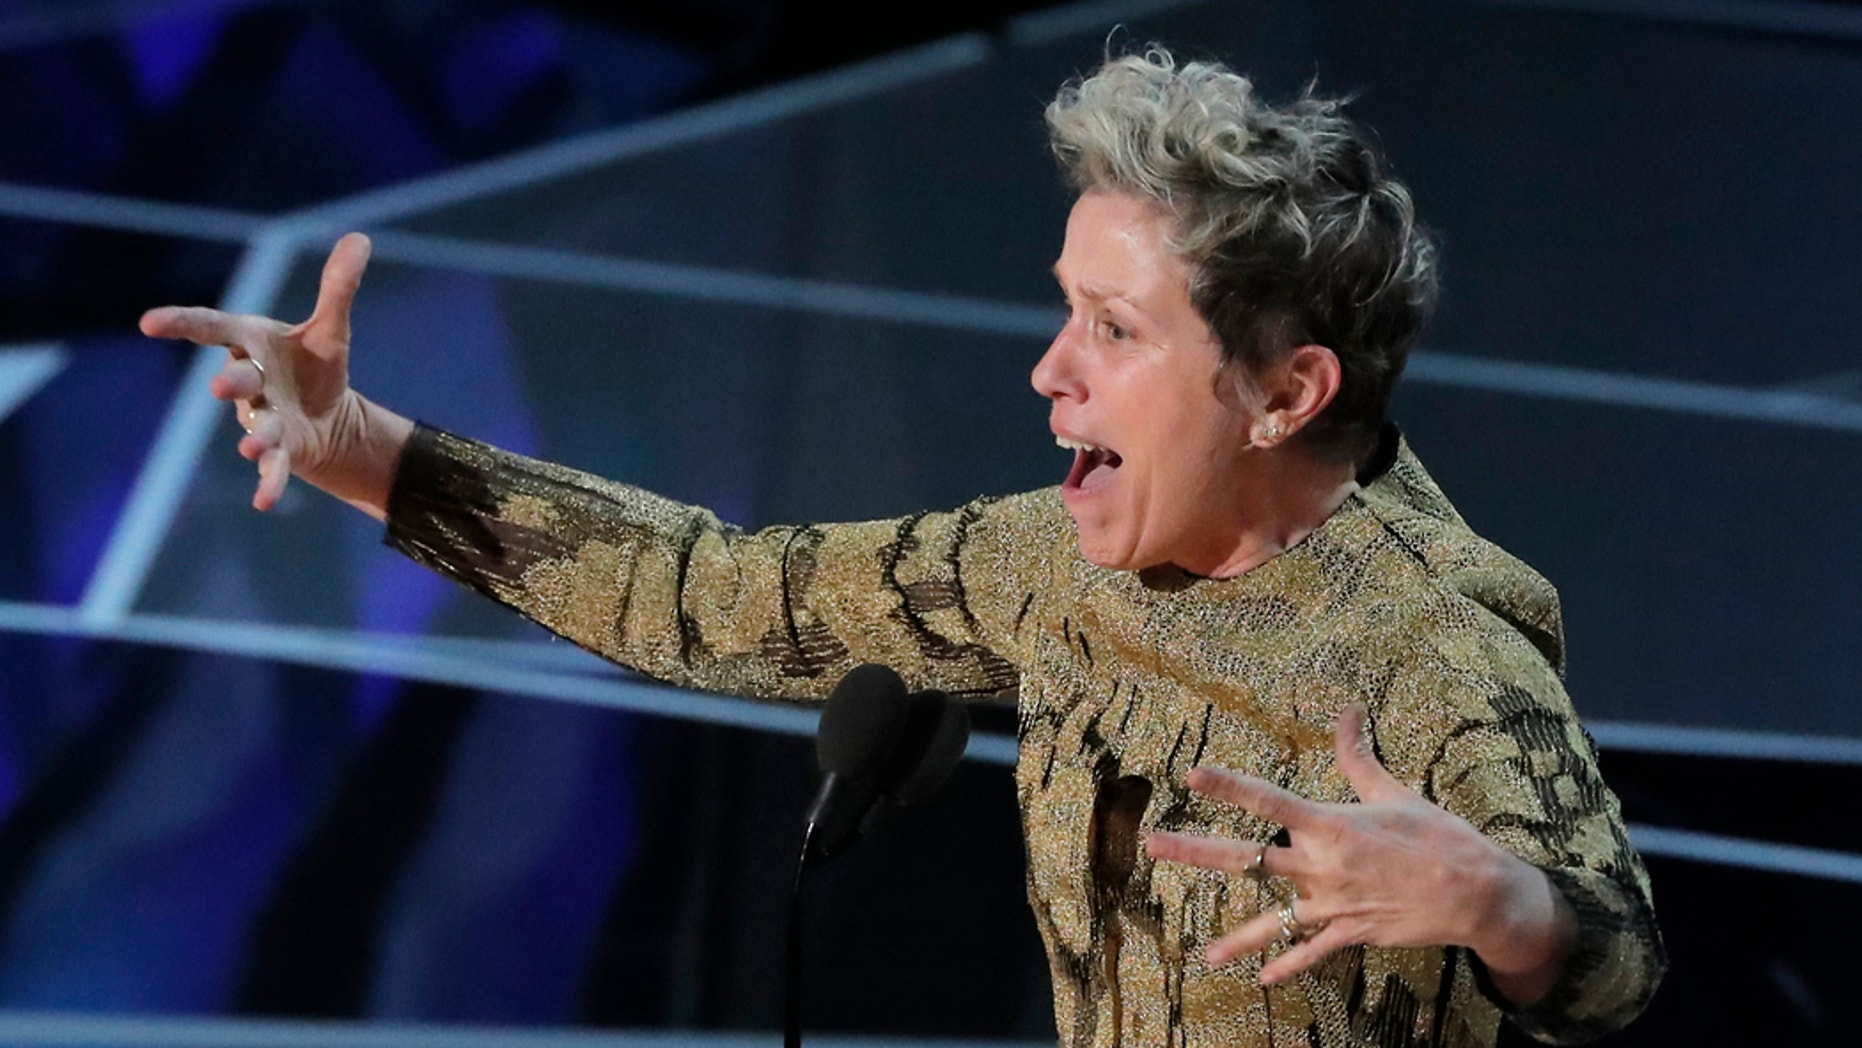 90th Academy Awards - Oscars Show – Hollywood - Frances McDormand accepts the Best Actress Oscar for her performance in Three Billboards Outside Ebbing, Missouri. REUTERS/Lucas Jackson - HP1EE350CXA8C